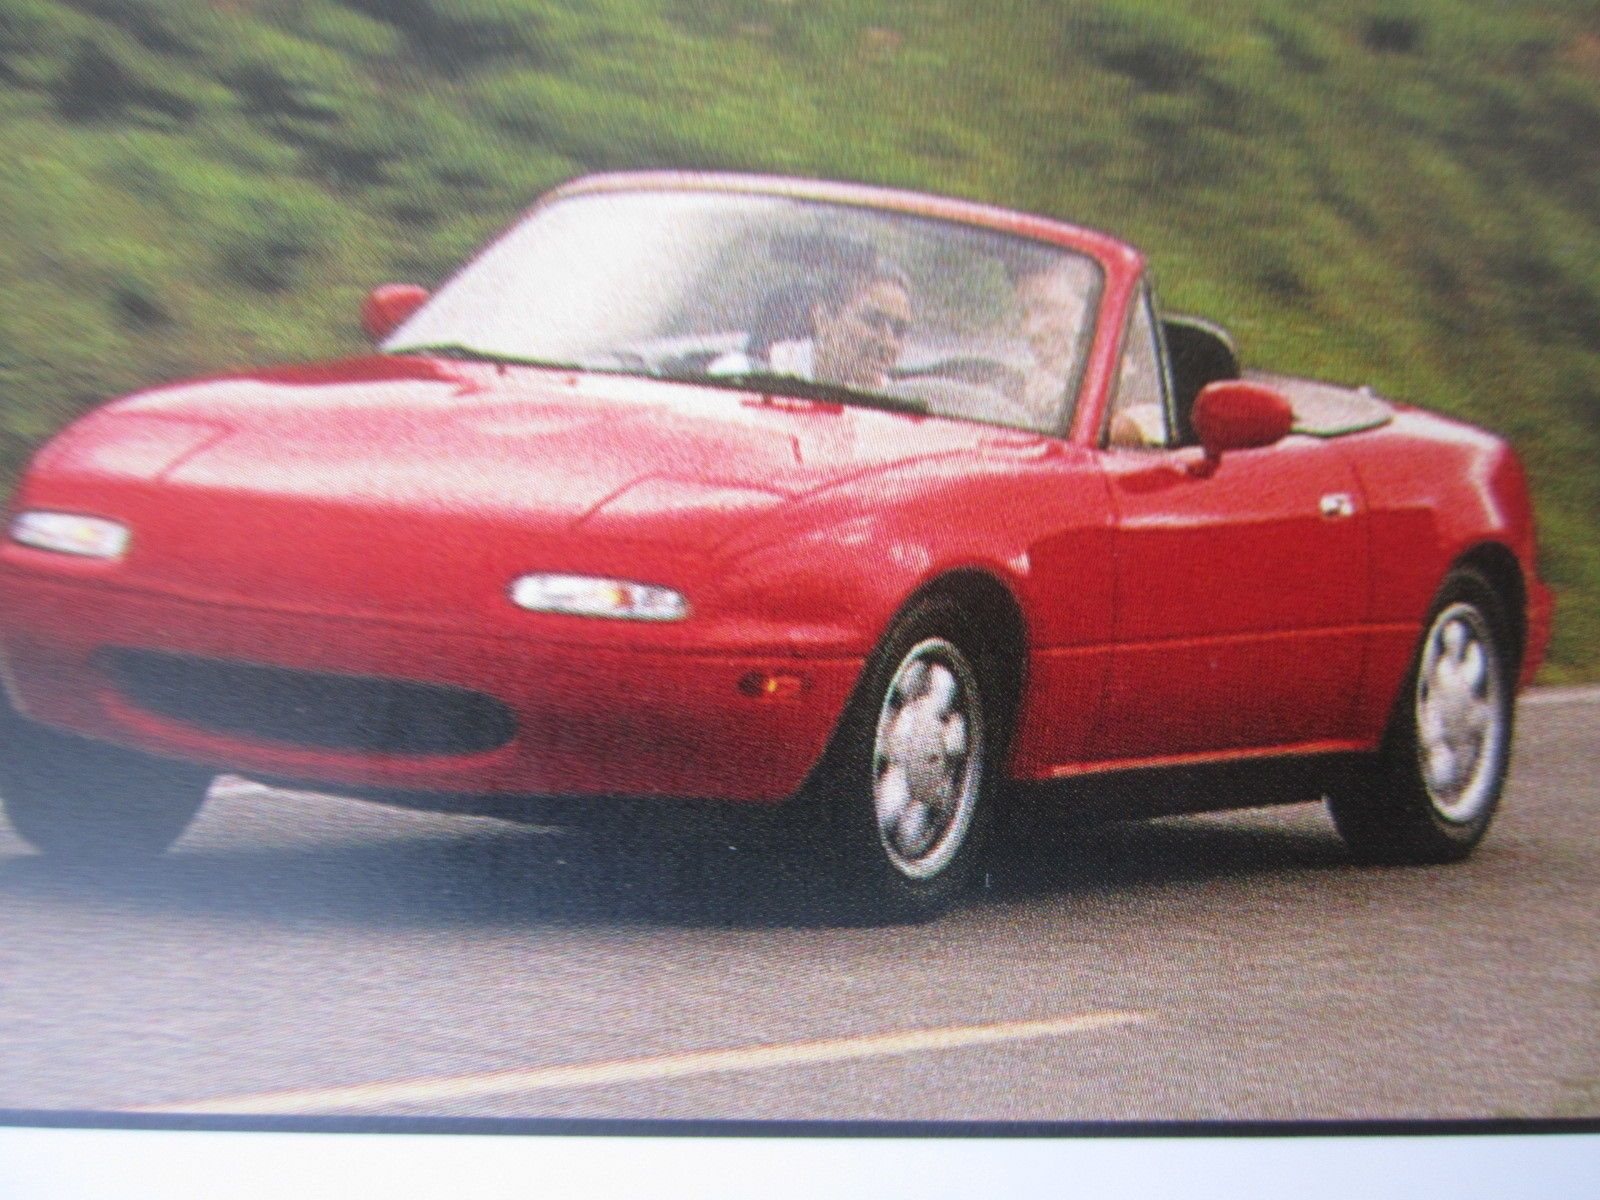 mazda mx 5 owners manual enthusiast zoom small roadster rare book rh pinterest co uk 2006 mazda mx 5 repair manual 2006 mazda mx 5 repair manual